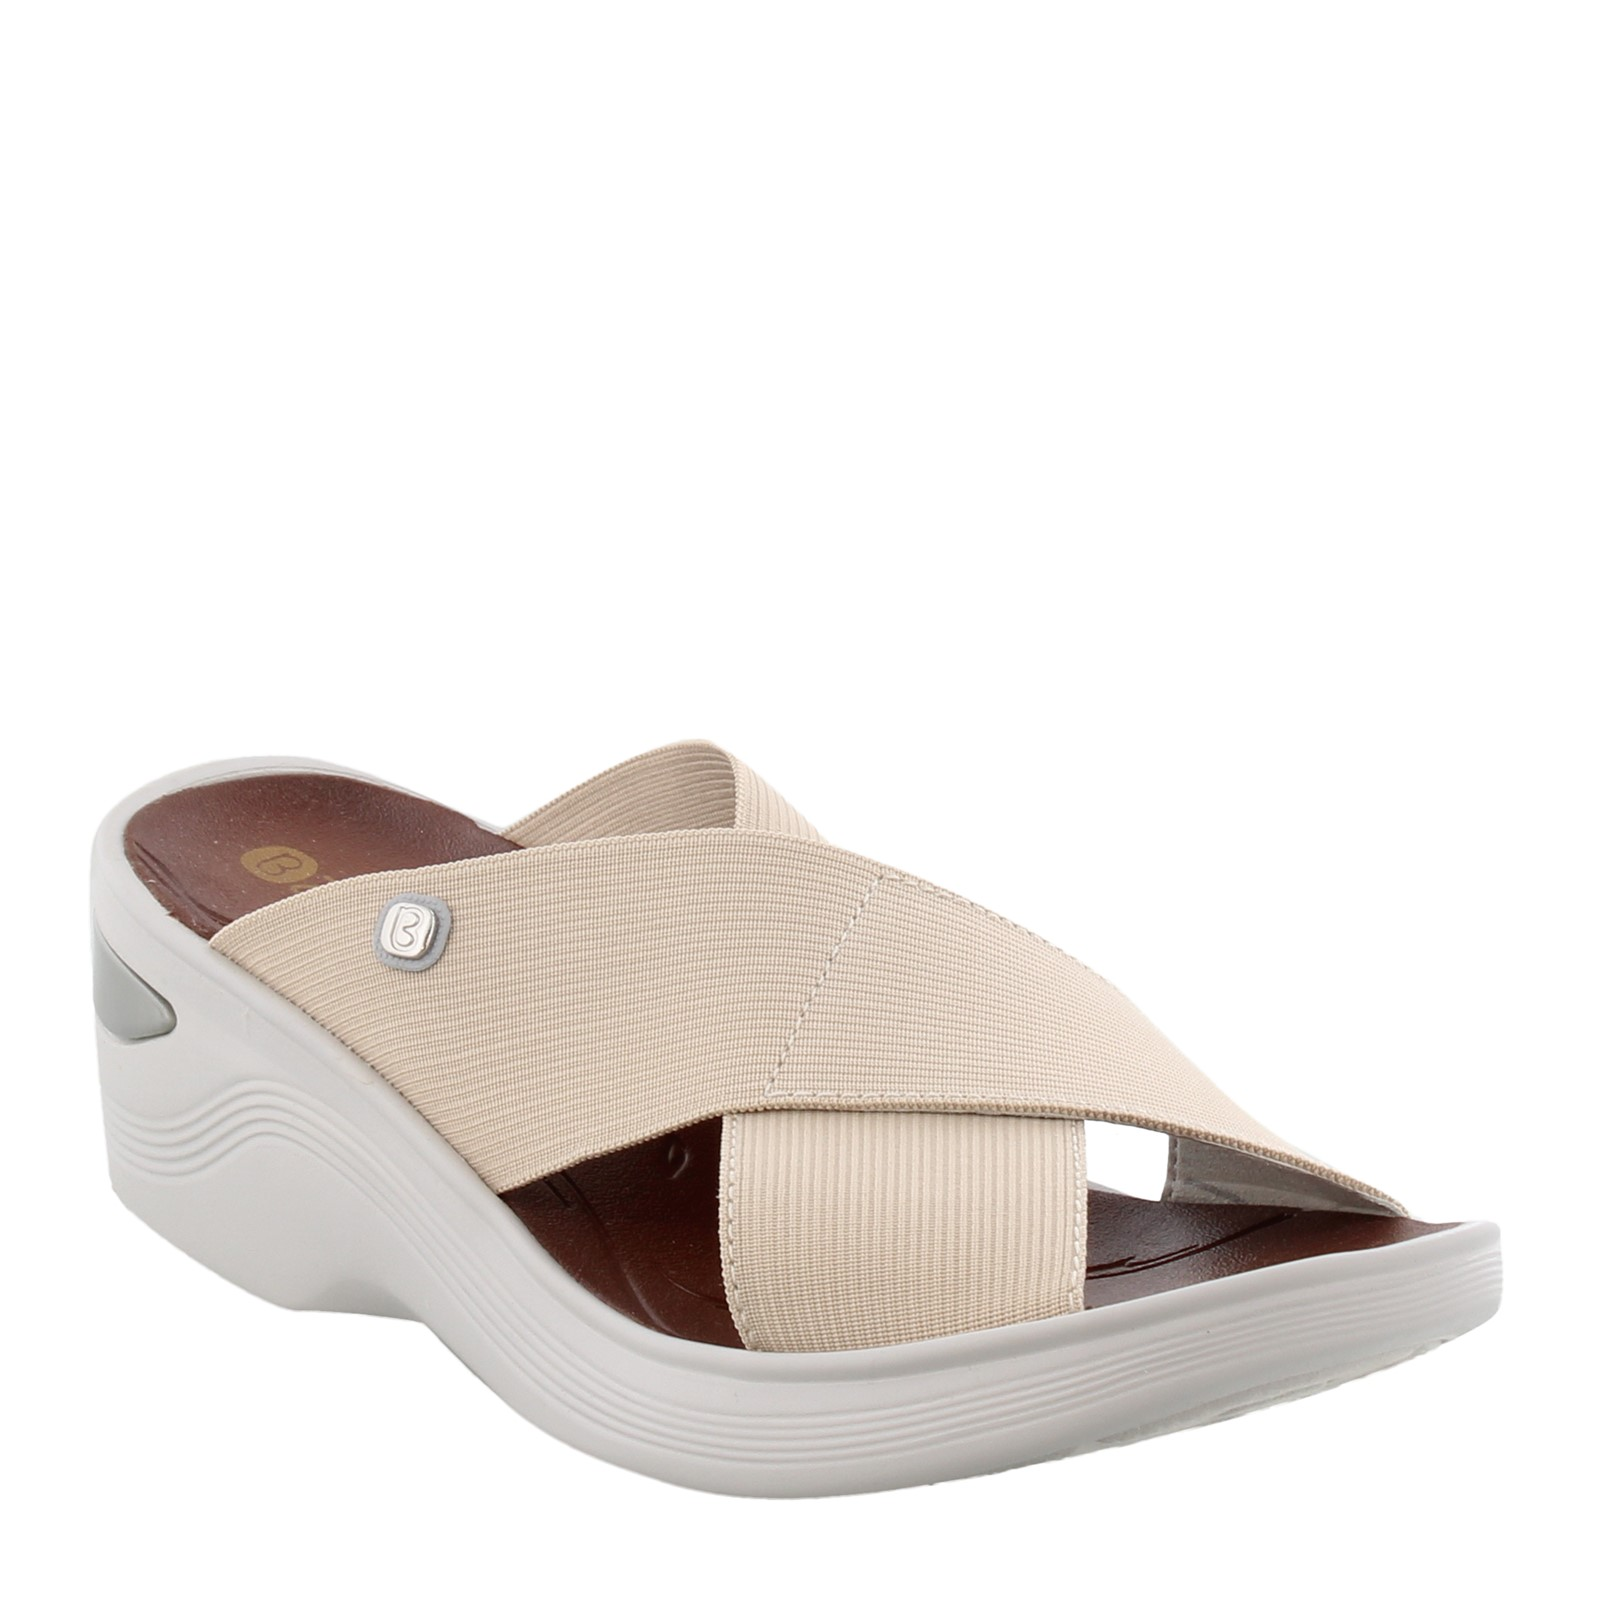 Women's Bzees, Desire Slide